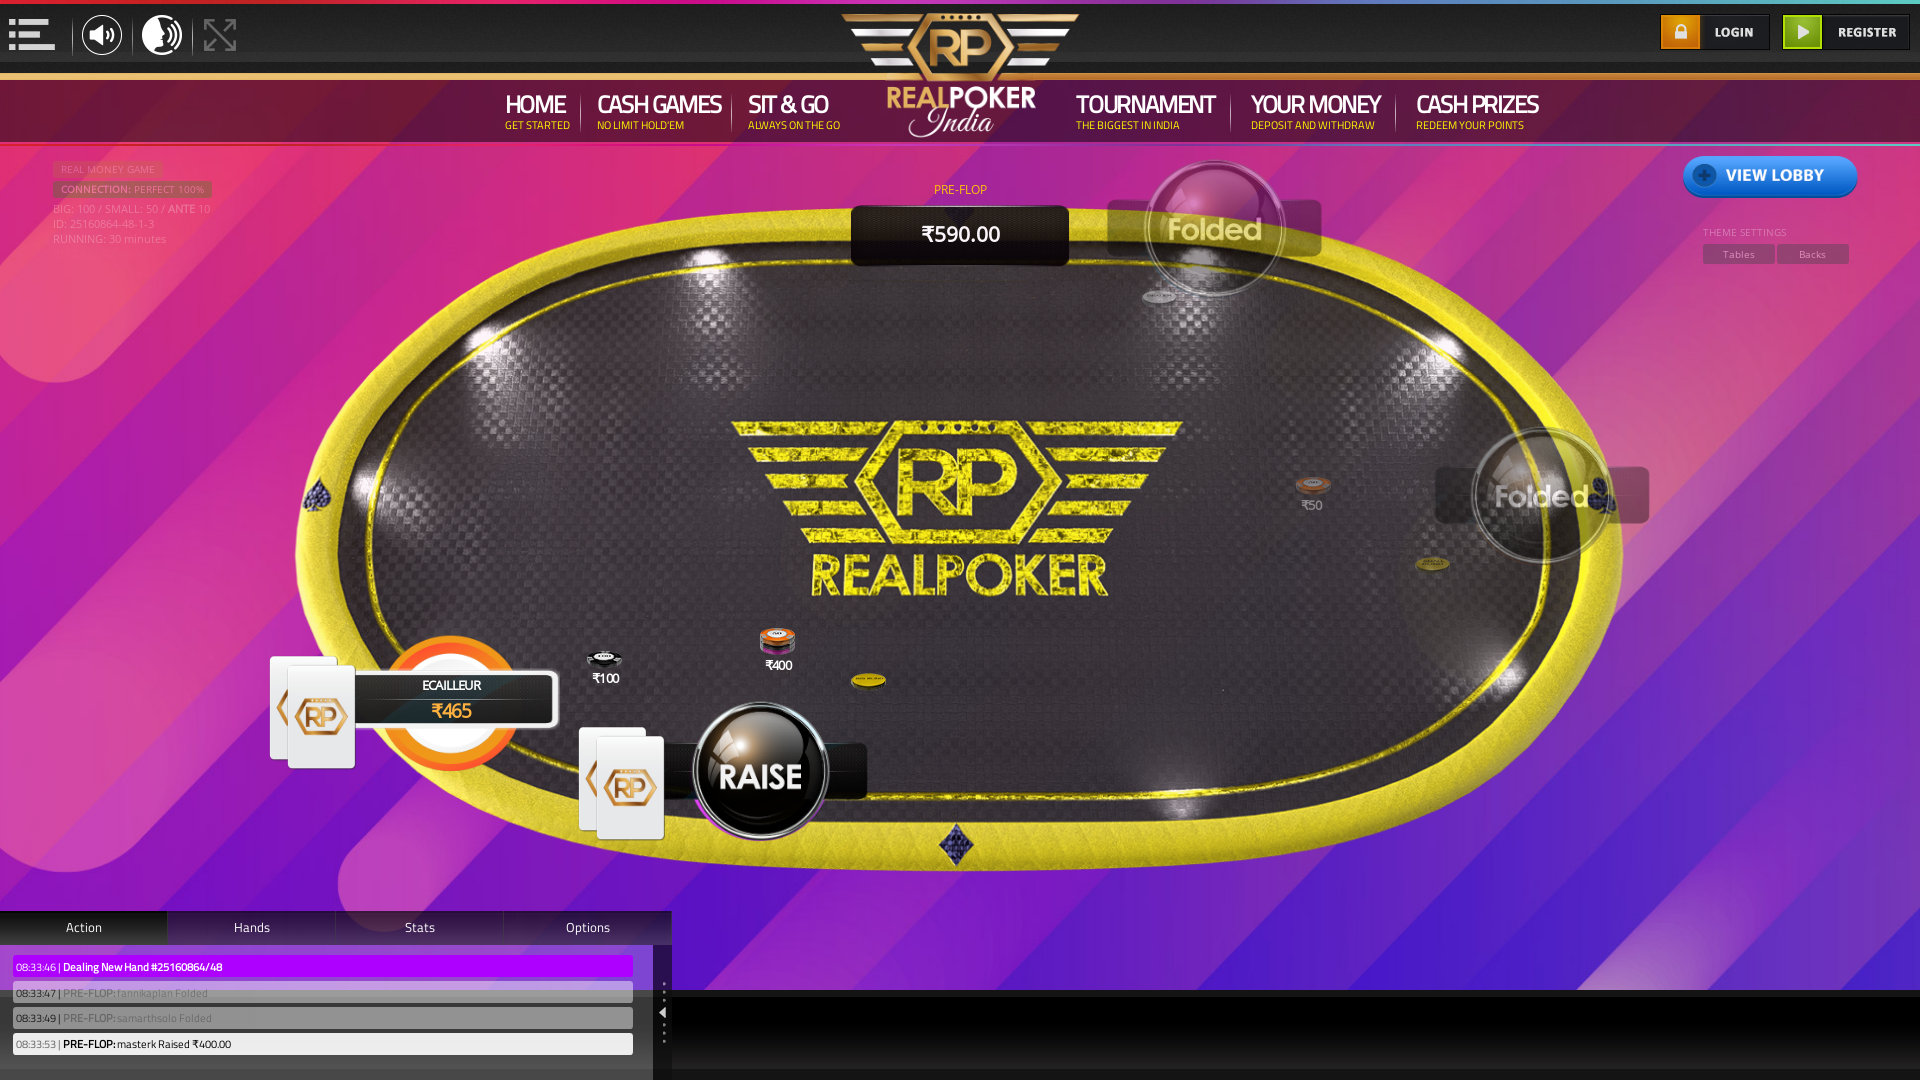 The 47th hand dealt between samarthsolo, fannikaplan, Ecailleur, masterk,  on poker india